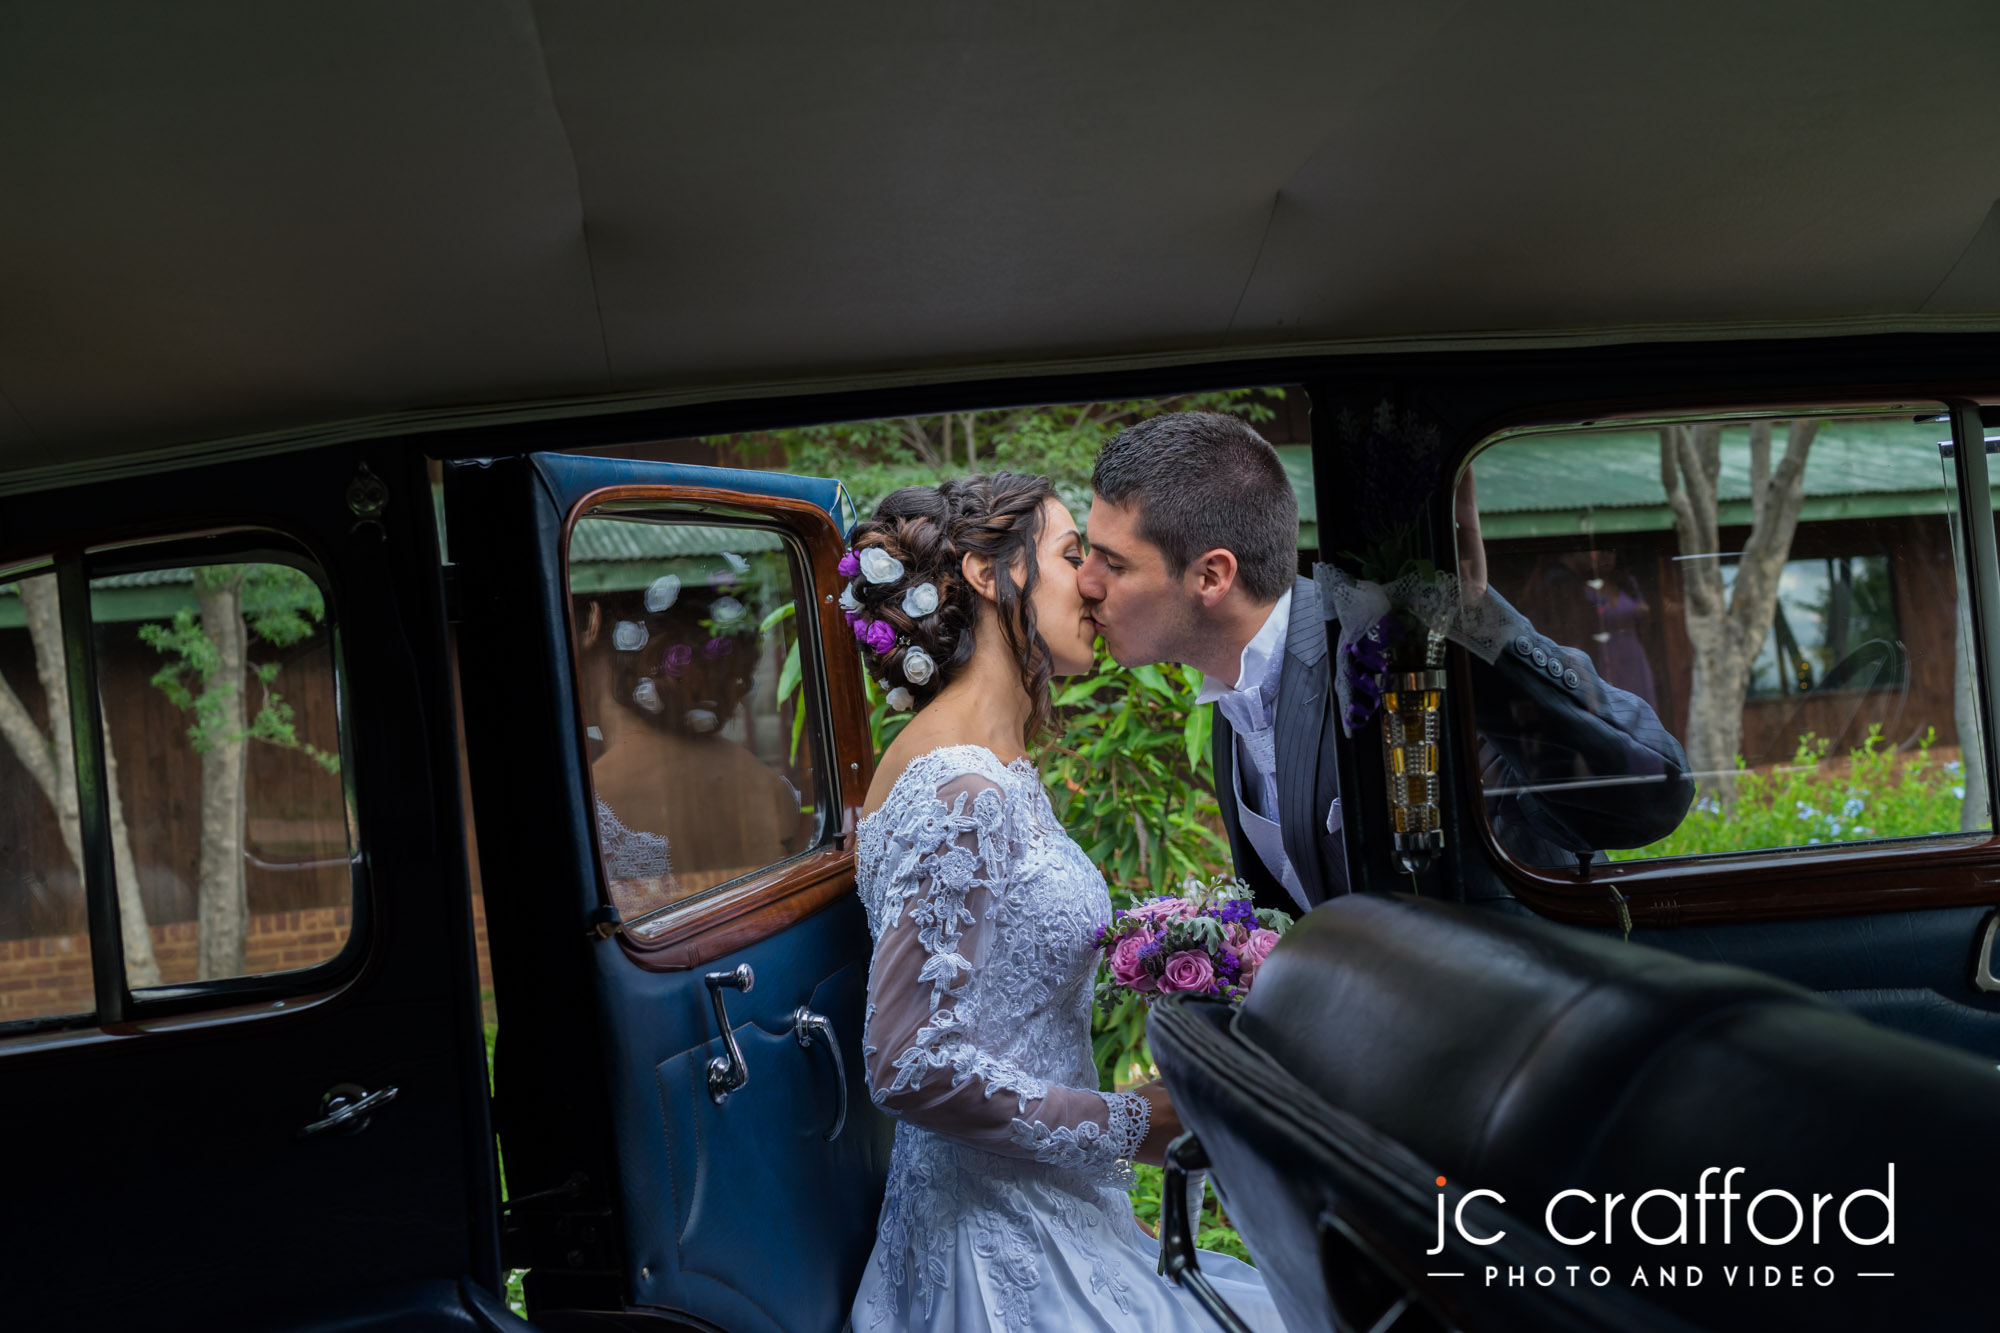 wedding photography at Rosemary Hill by JC Crafford Photo and Video JN